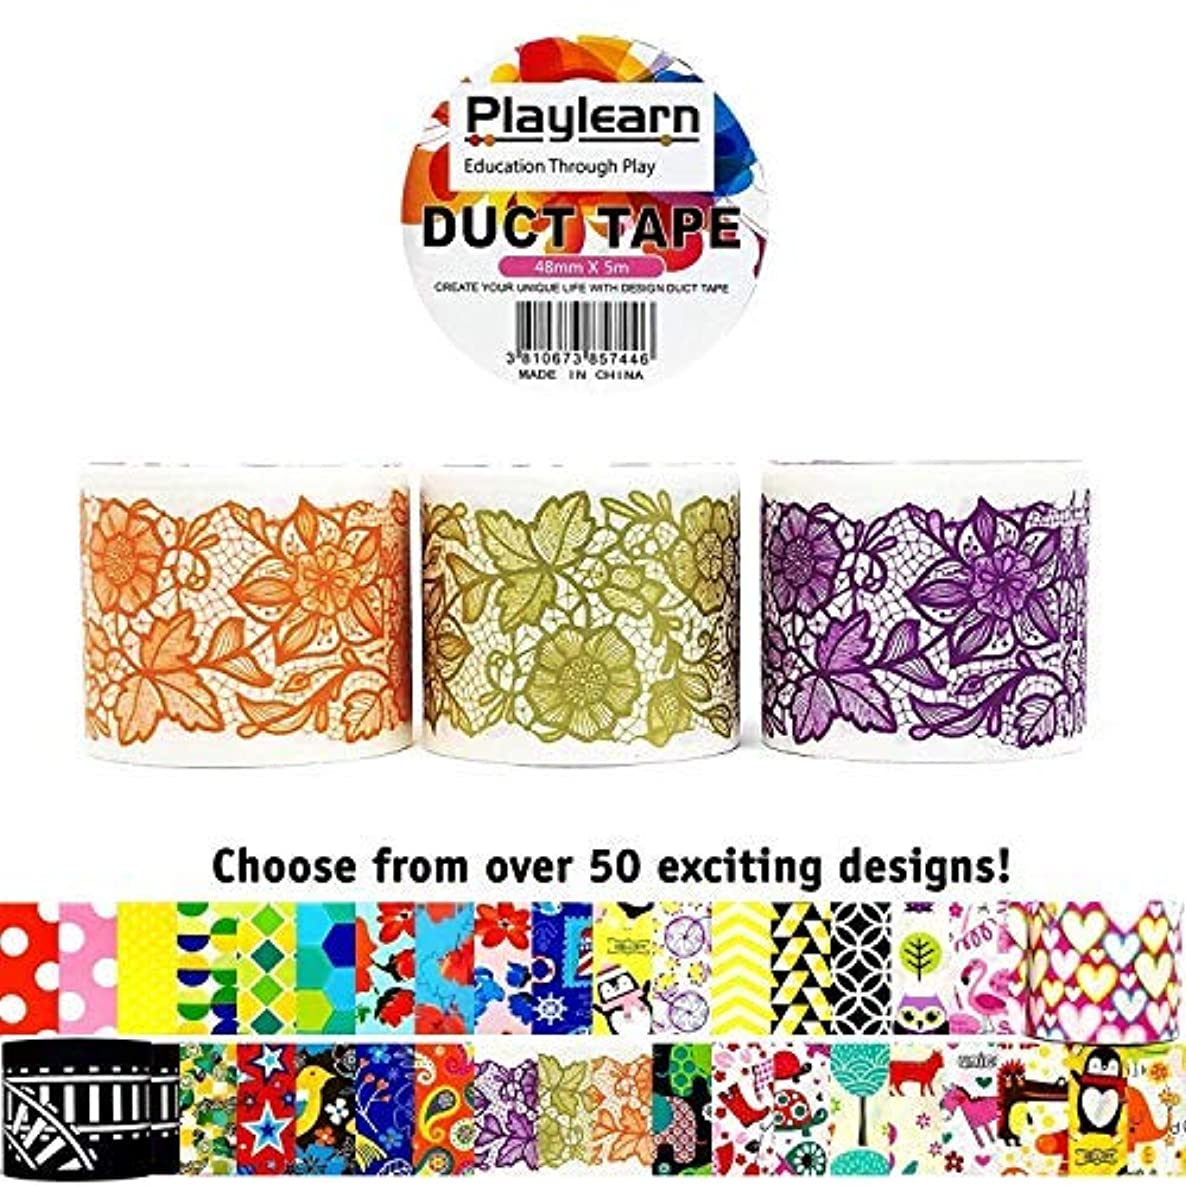 Design Duct Tape 48mm x 16 Feet - Kids Fun Extra Strong Printed Arts & Crafts Multi Pack - by Playlearn (Lace Ribbon)